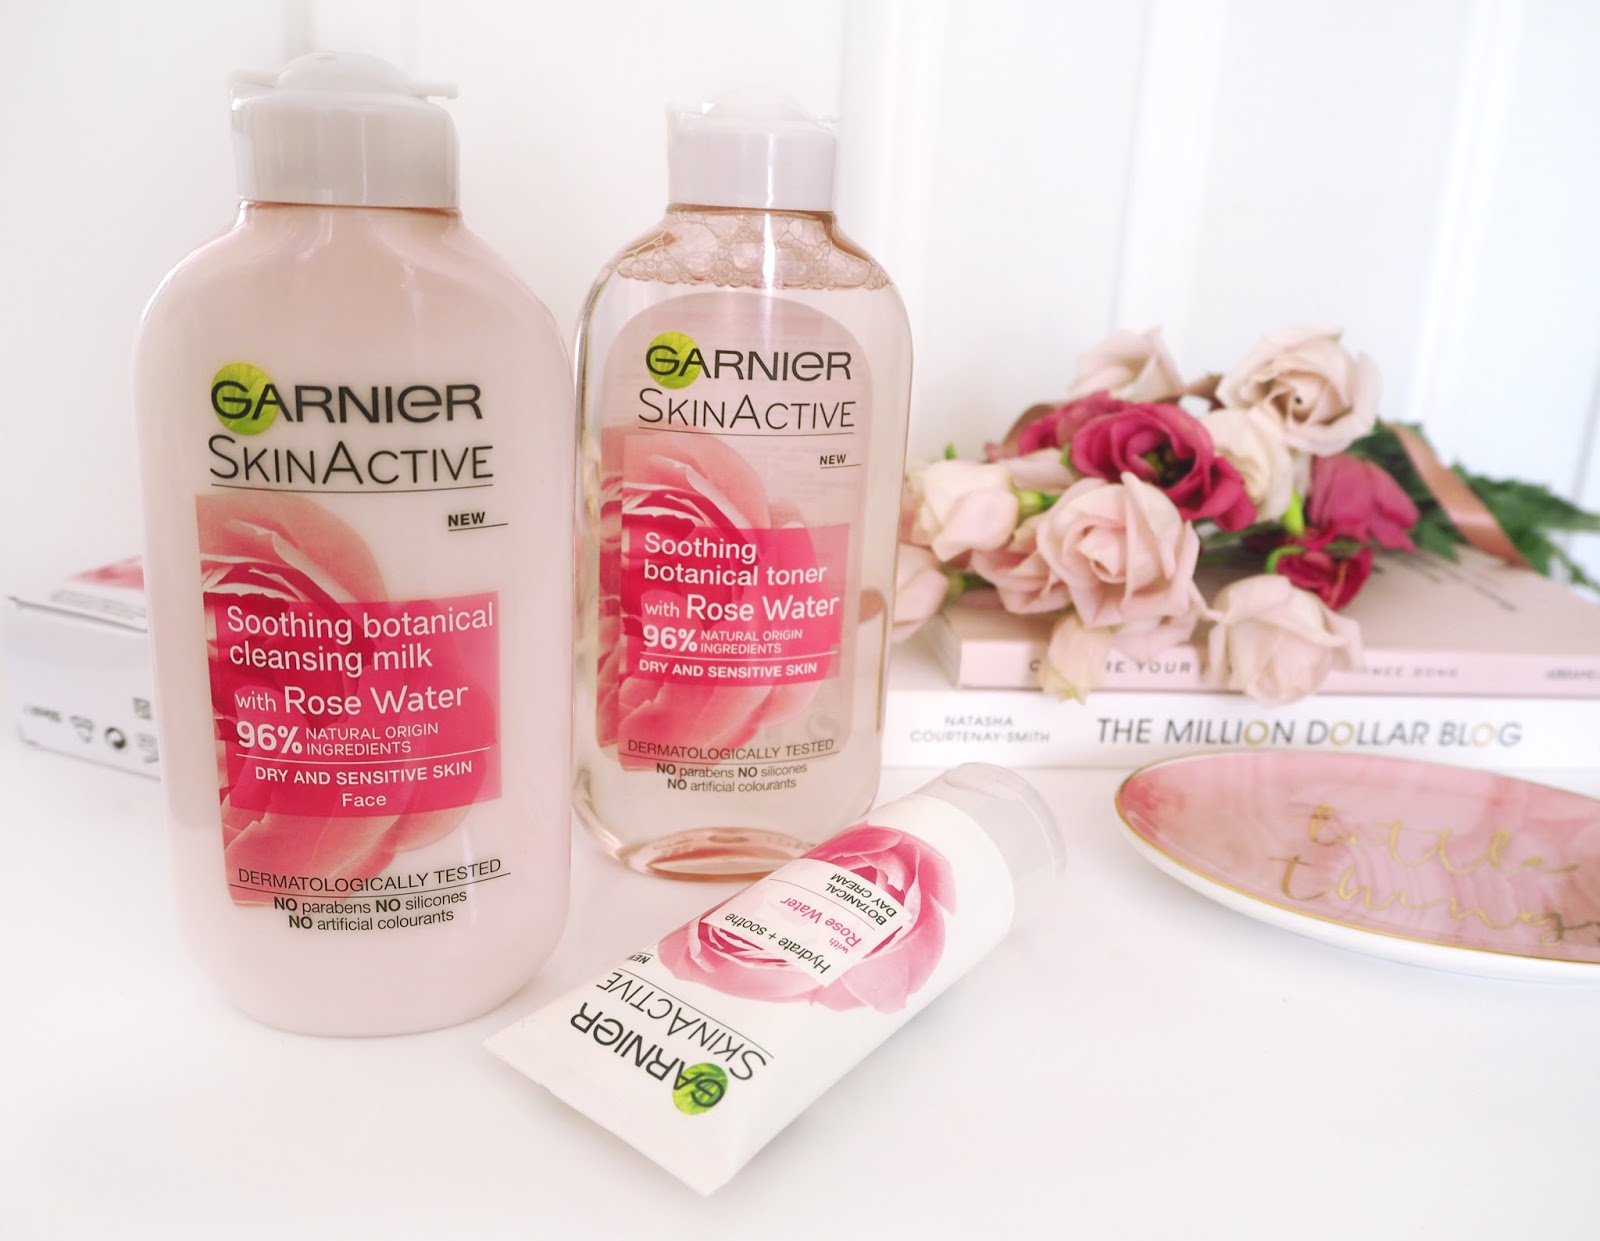 GARNIER ROSE CREAM REVIEW